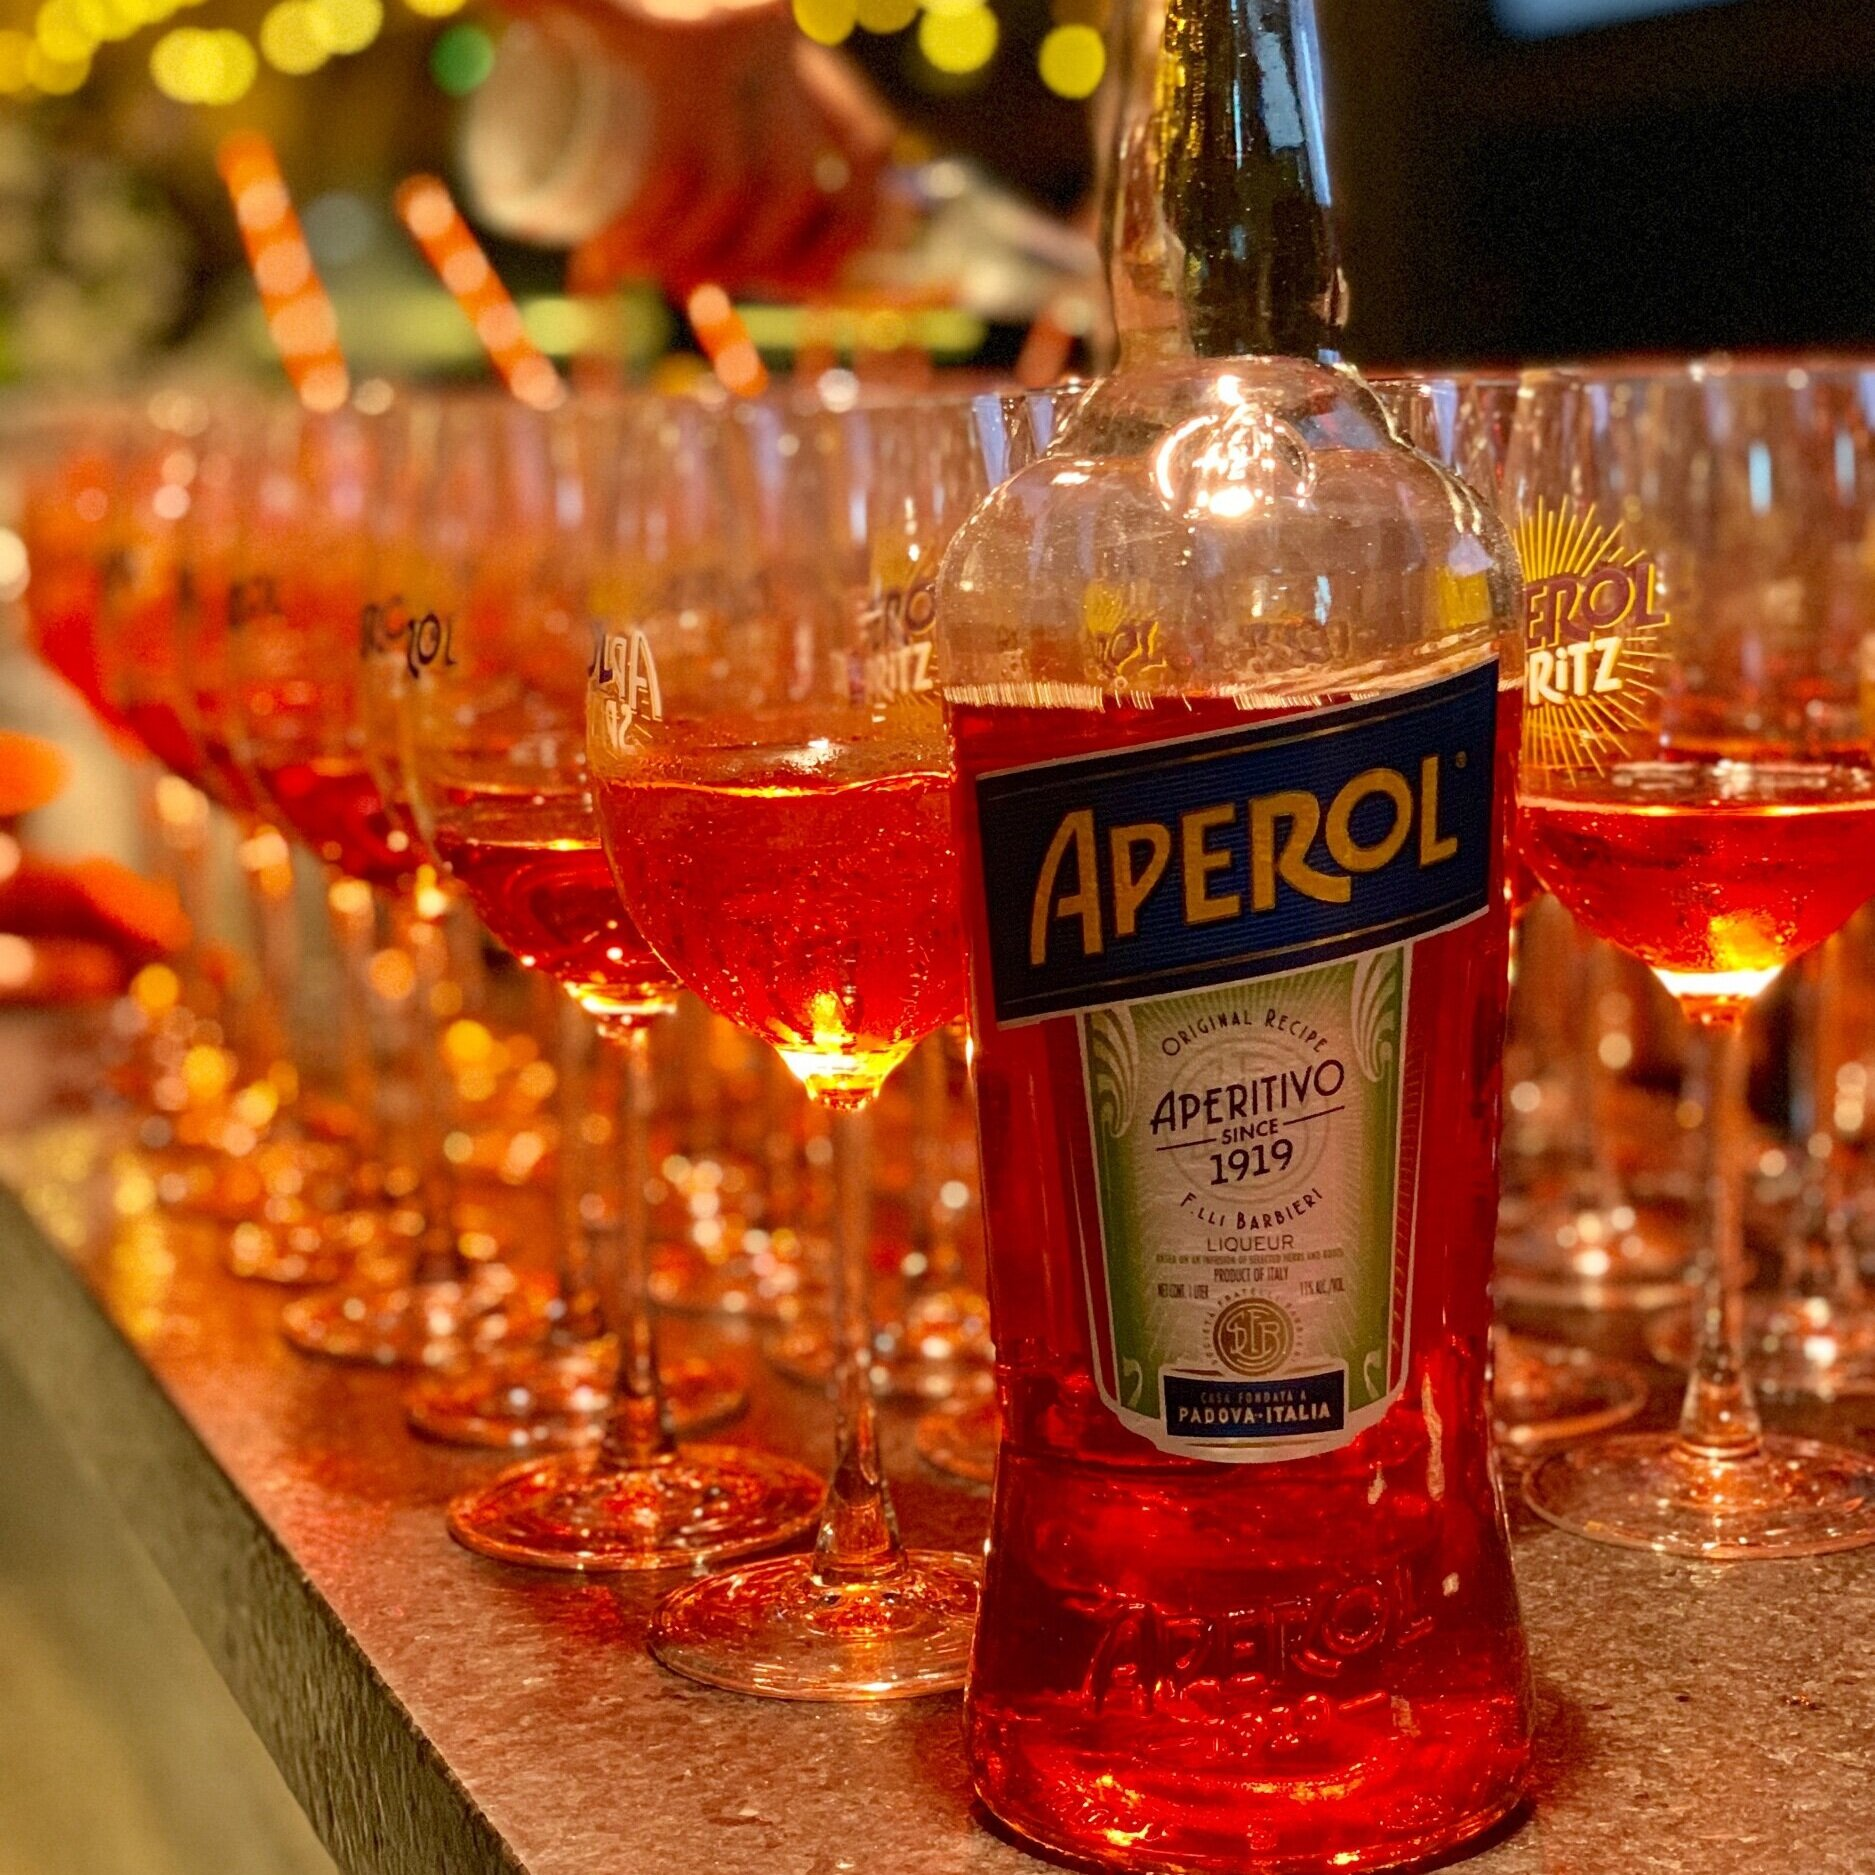 Wouldn't be a proper cruise without Aperol